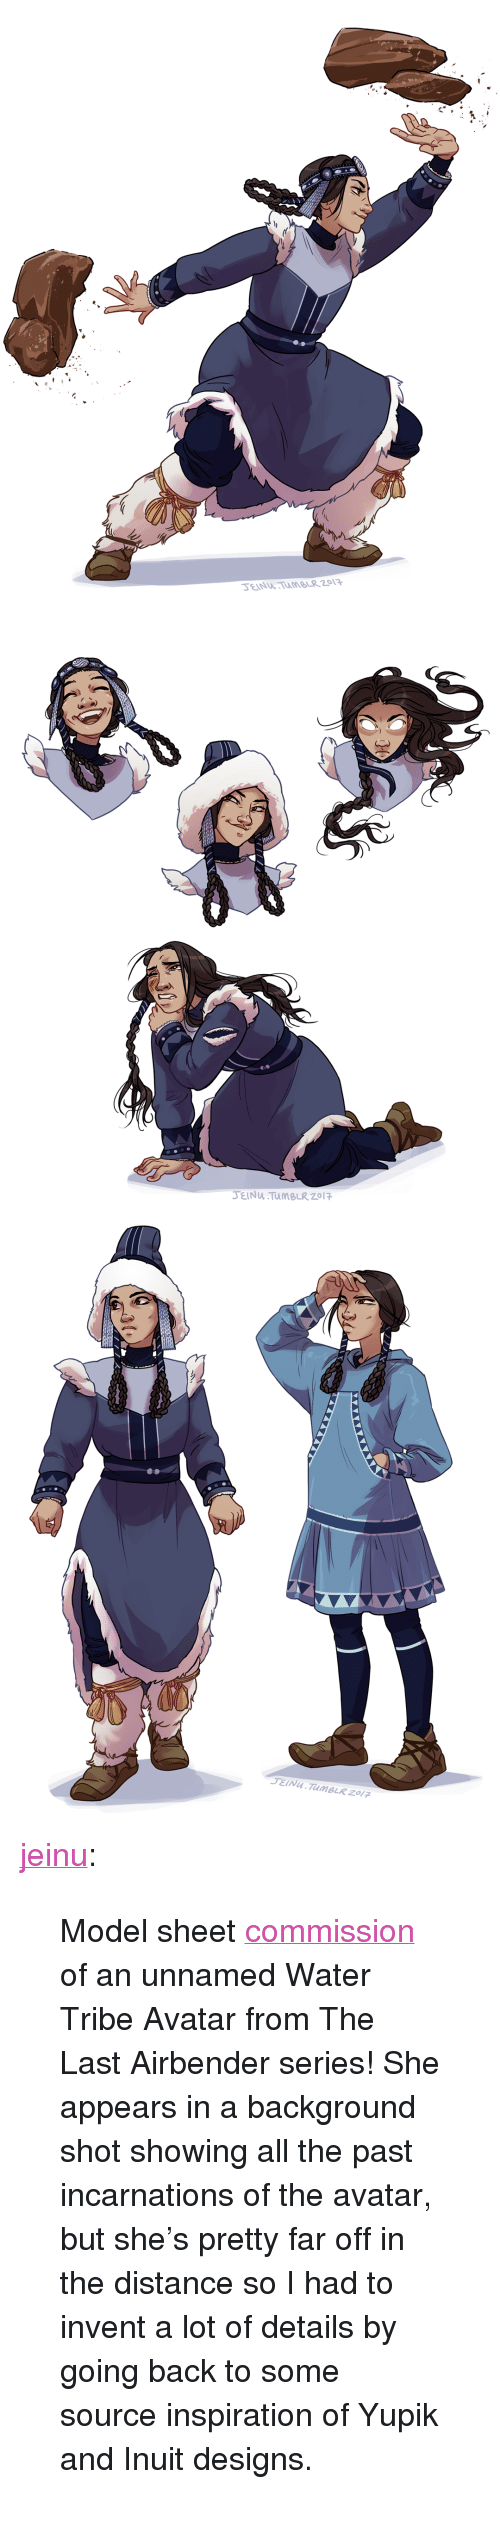 "The Last Airbender, Tumblr, and Avatar: SEINTUBLR 2013   JEINU TuMBLR 2017 <p><a href=""https://jeinu.tumblr.com/post/164463859460/model-sheet-commission-of-an-unnamed-water-tribe"" class=""tumblr_blog"">jeinu</a>:</p> <blockquote><p>Model sheet <a href=""https://jeinu.tumblr.com/commissions"">commission</a> of an unnamed Water Tribe Avatar from The Last Airbender series! She appears in a background shot showing all the past incarnations of the avatar, but she's pretty far off in the distance so I had to invent a lot of details by going back to some source inspiration of Yupik and Inuit designs. </p></blockquote>"